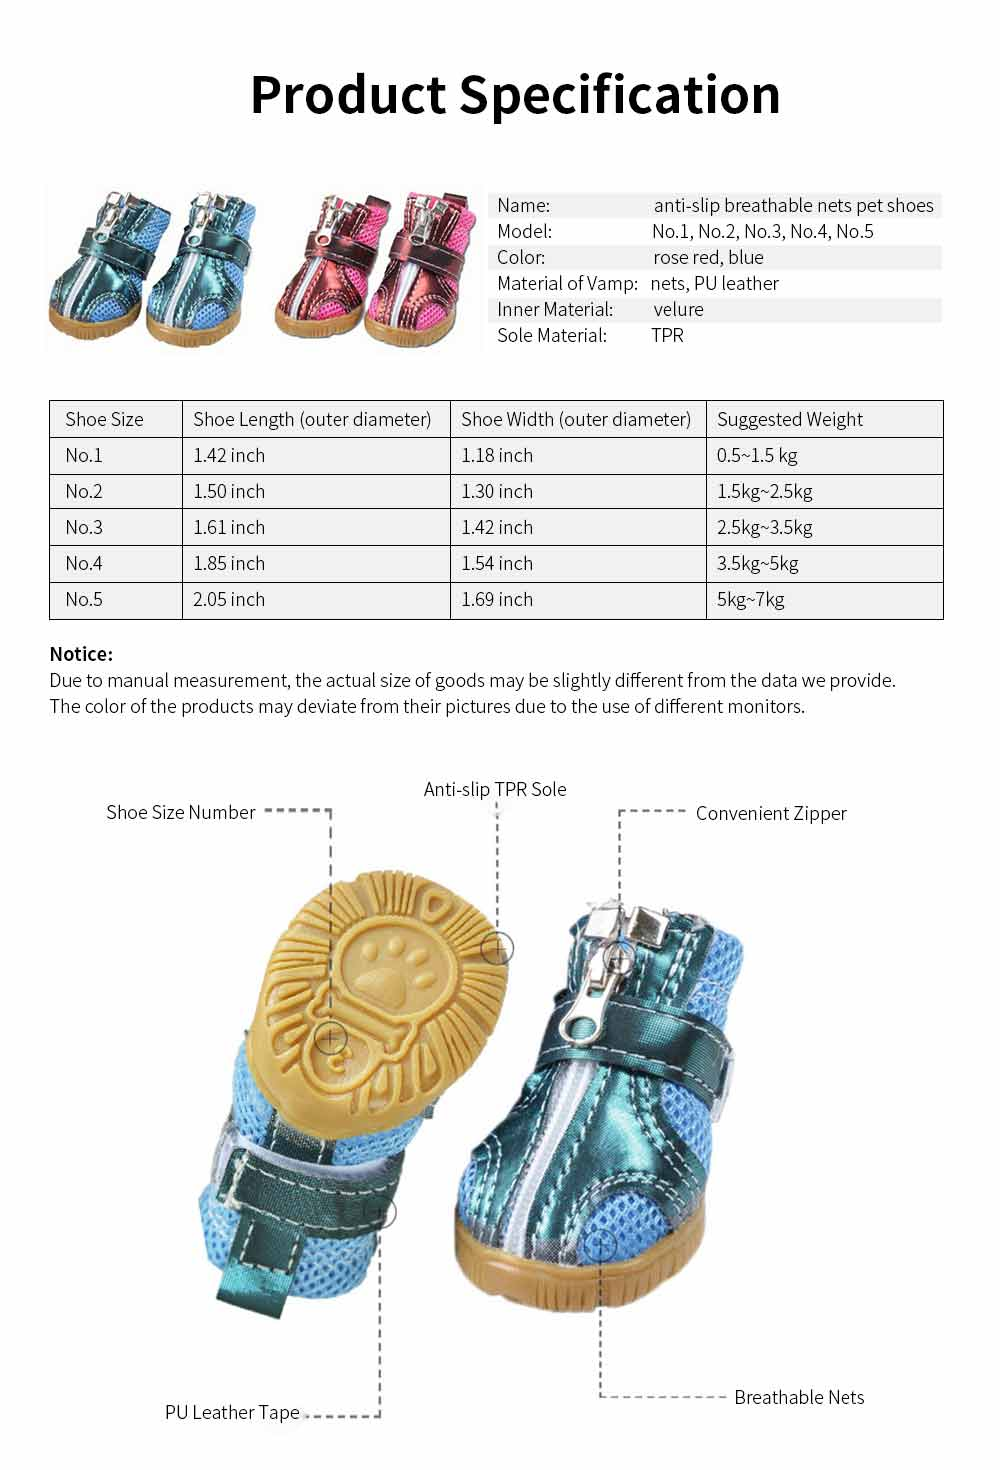 Fashion Nets Villus Dog Shoes Pet Boots for Small Dogs, Breathable Pet Boots with Durable Gum Outsole 6